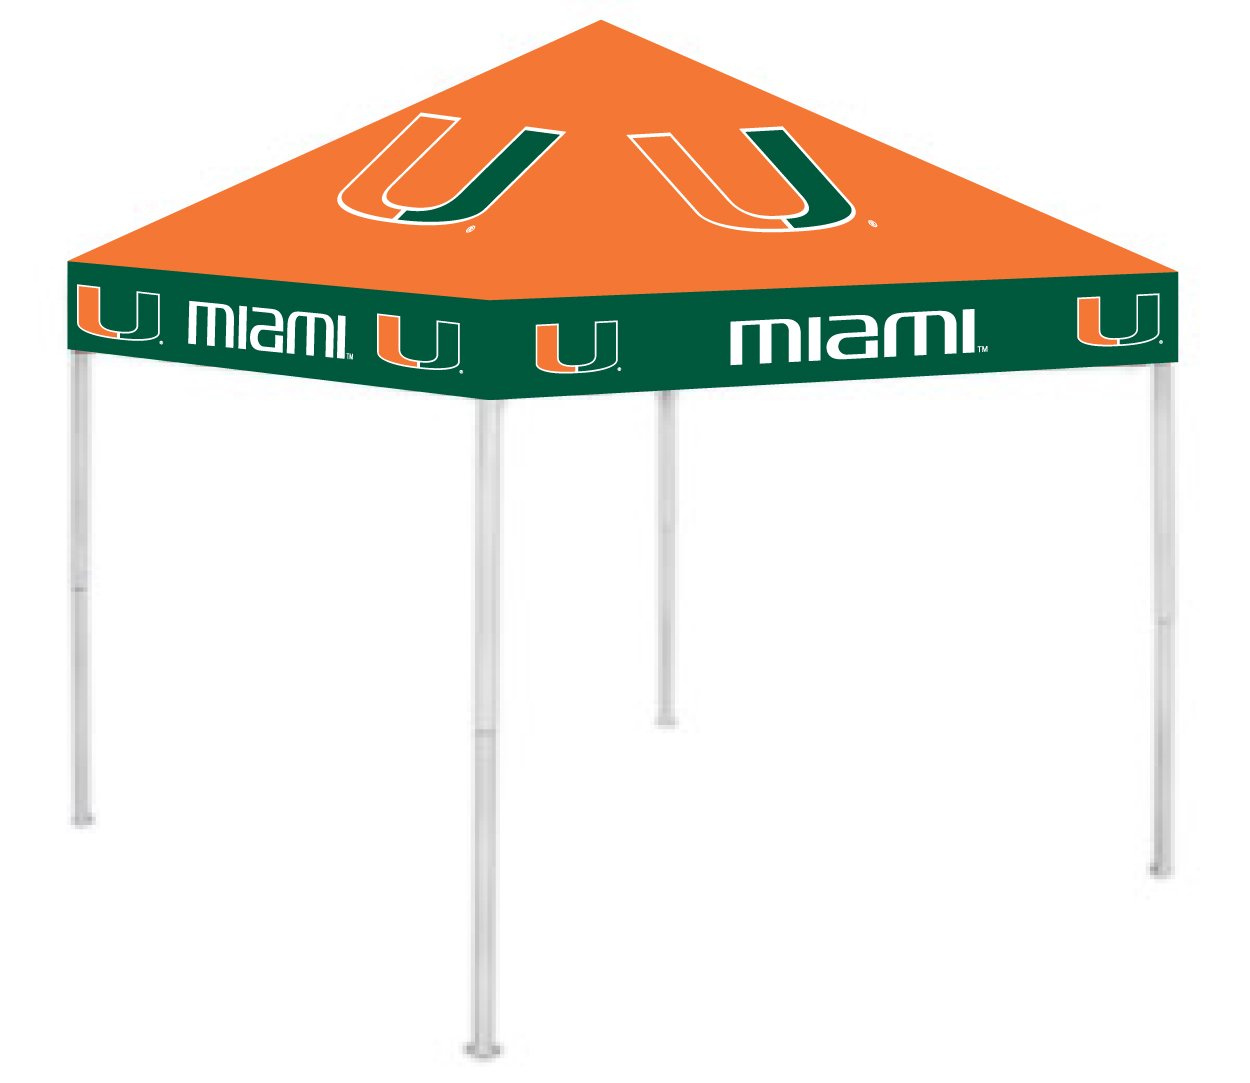 Rivalry RV269-5000 University of Miami Canopy B003HLQSC8 9 x 9|Miami Hurricanes Miami Hurricanes 9 x 9